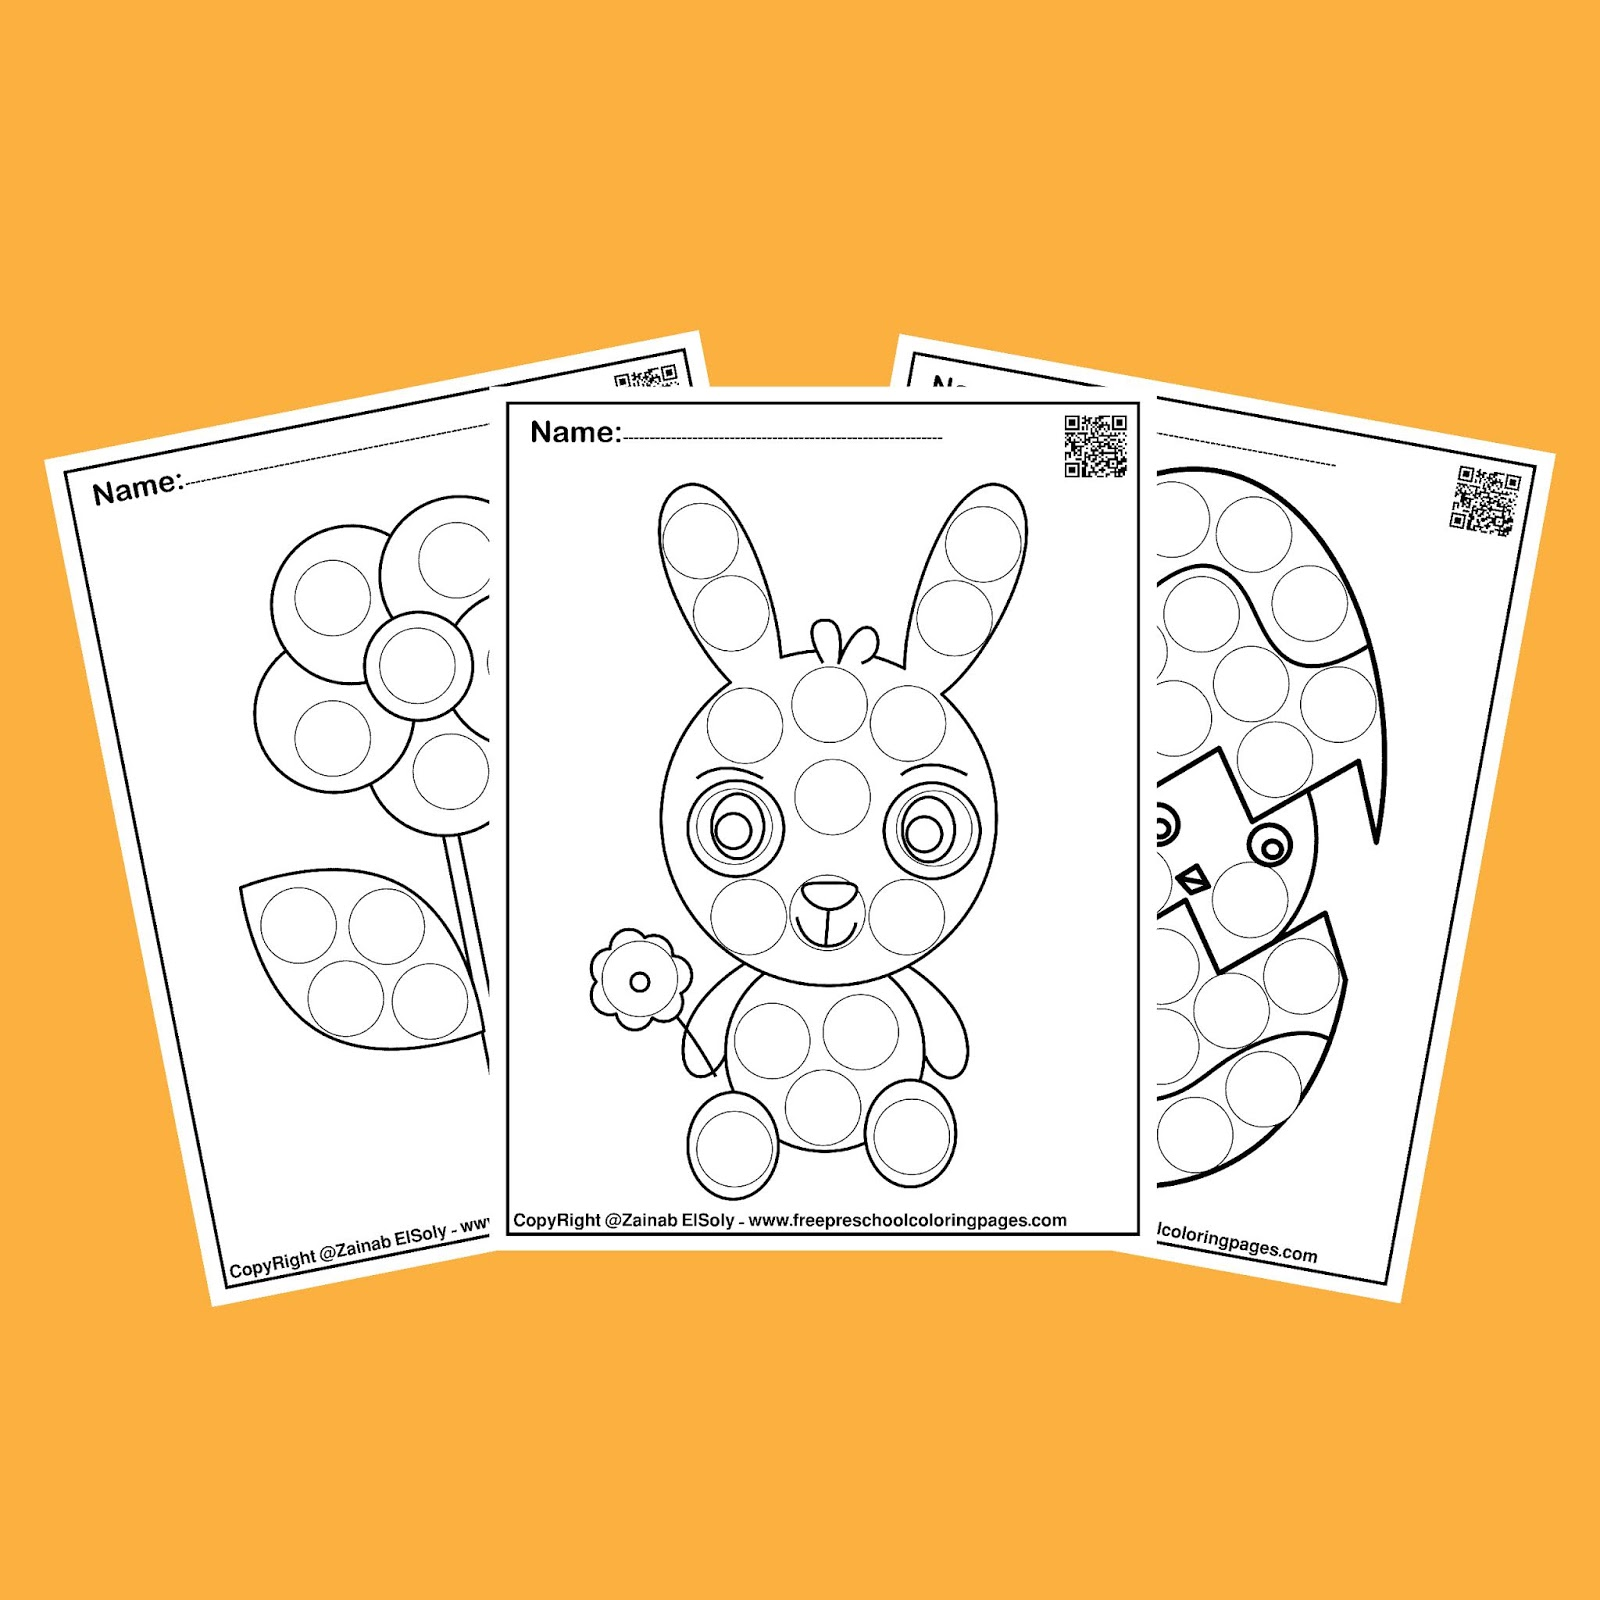 20 Best Peeps Coloring pages images | Coloring pages, Marshmallow ... | 1600x1600